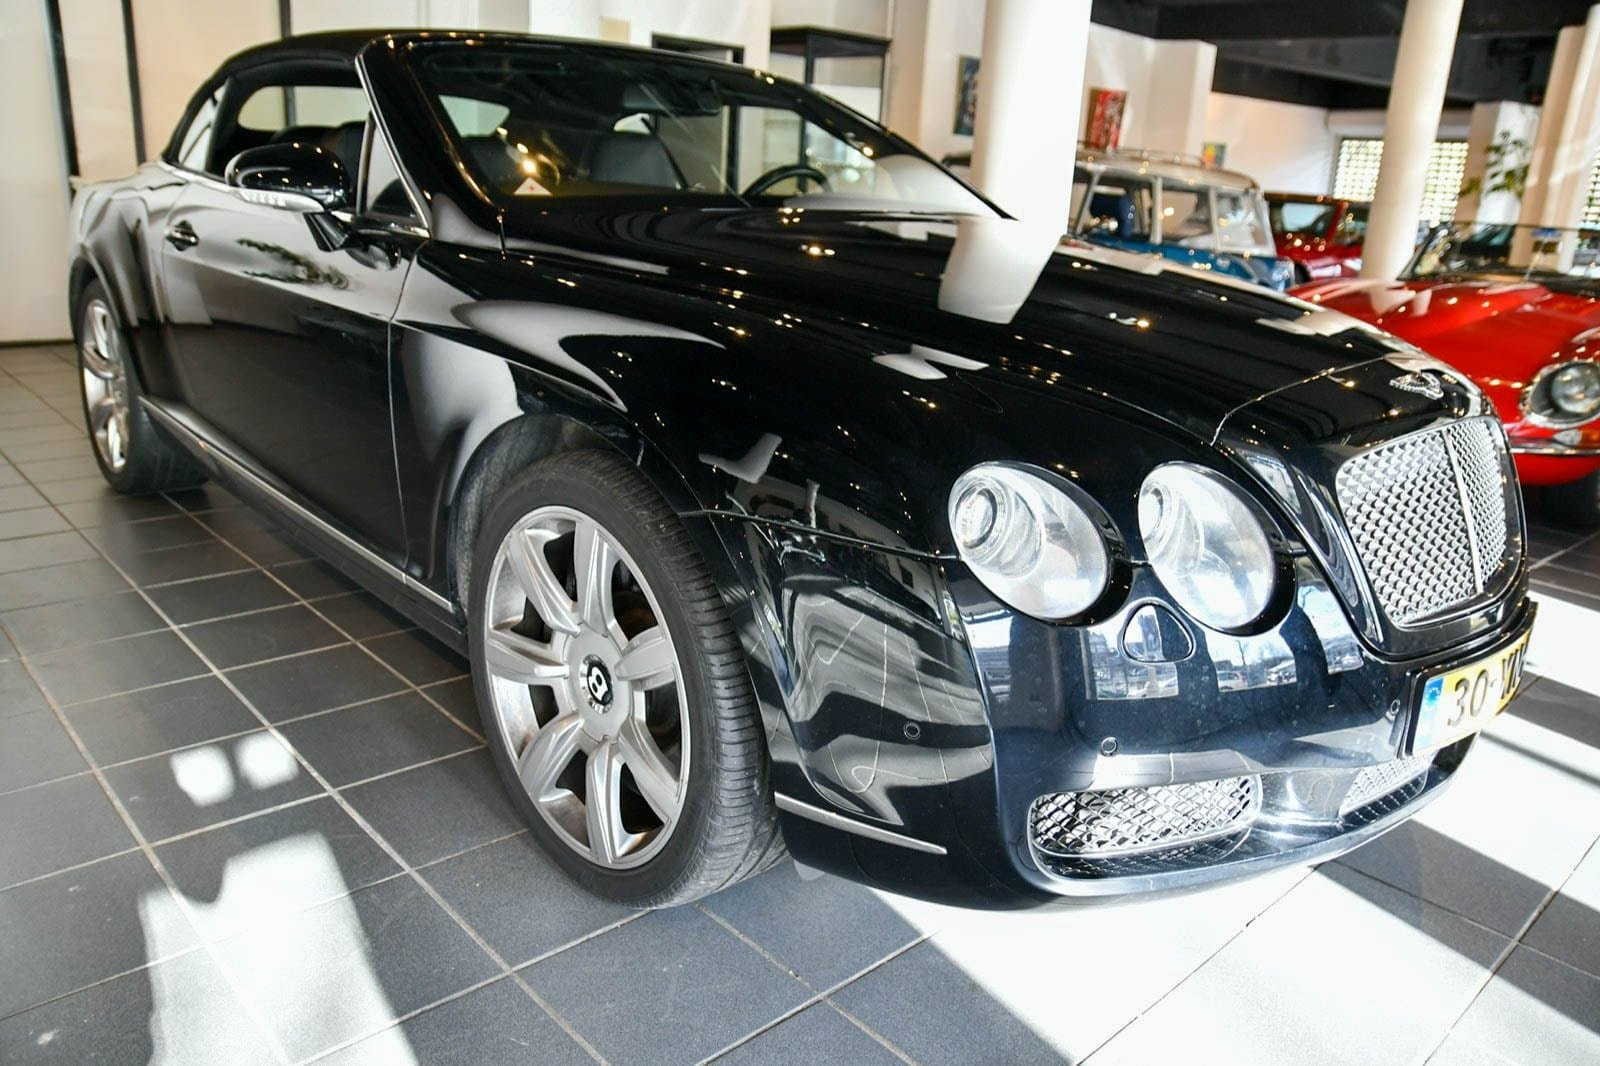 Bentley Continental GT 6.0 W12 GTC Convertible 2007 For Sale by Auction (picture 4 of 6)